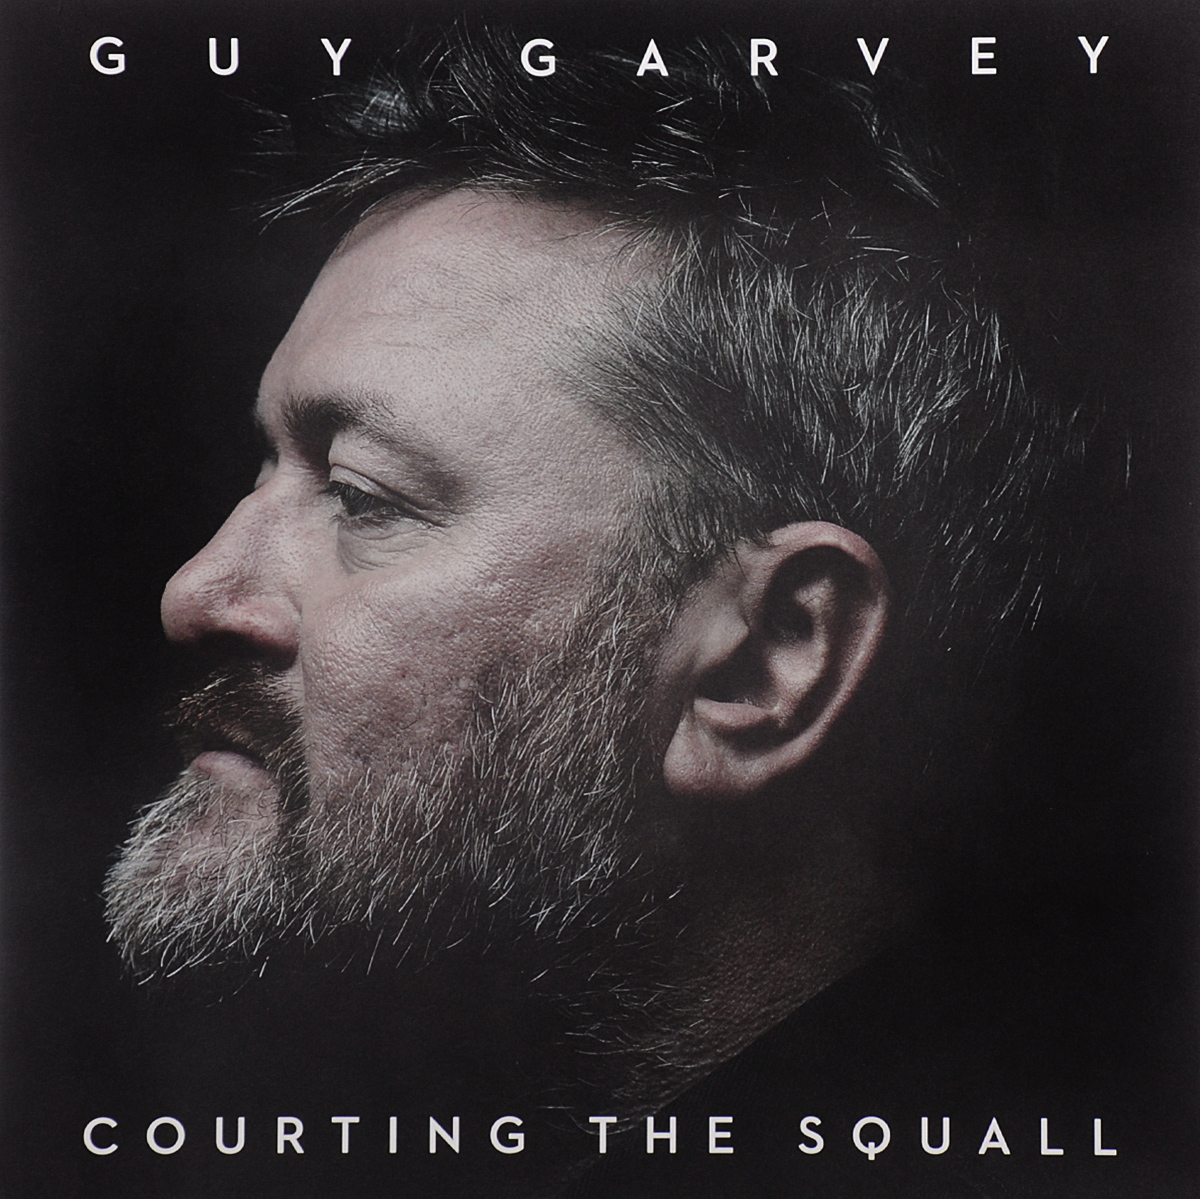 Гай Гэрви Guy Garvey. Courting The Squall (LP) гай лафитт guy lafitte blue and sentimental